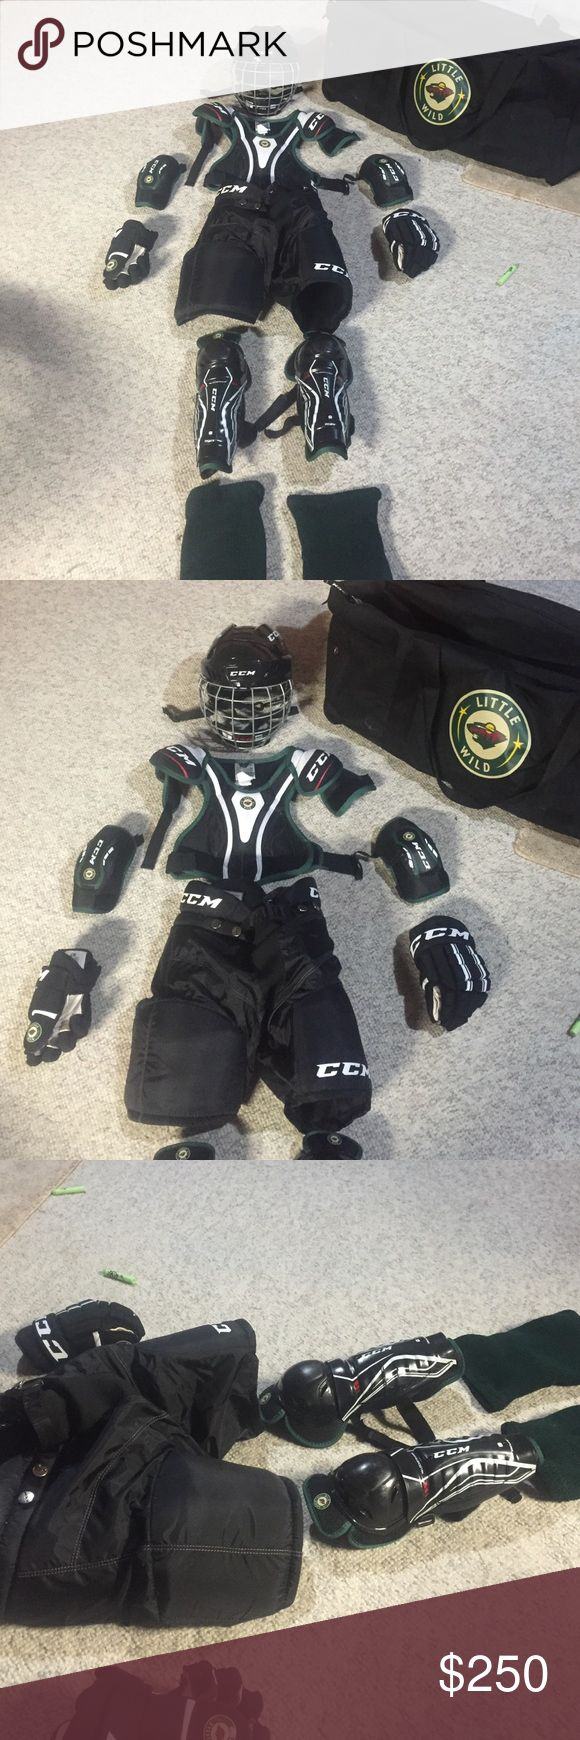 "All the YOUTH hockey stuff you need - all bundled. ***will only sell to local area**  will not ship **Selling hockey stuff absolutely perfect condition.  Helmet(small -25) chest pad (youth large 24""-28"",61-71cm). Elbow pads (youth large 4.0-4.4"") gloves (10""/26cm). Hockey pants (youth large 22""-24""/56-61cm. Shin pads (large 9""/23cm) and green shin socks.   This bag fits everything!   Great buy!   Original price for all items including bag is $350.  I'm selling for 100 Other"